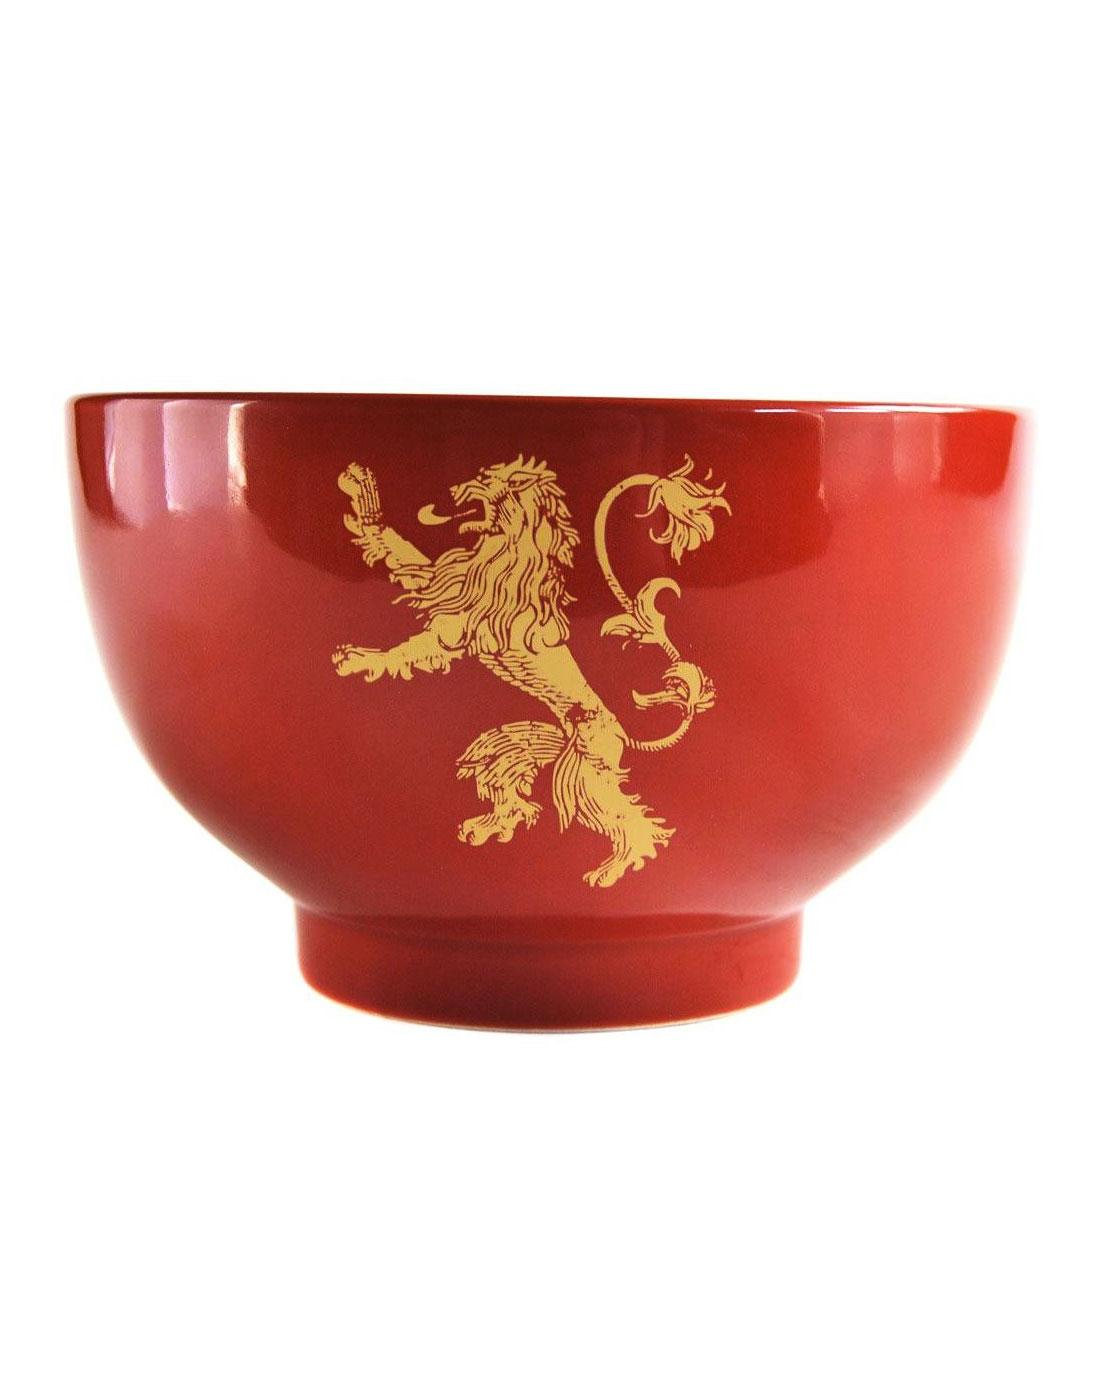 House Lannister GAME OF THRONES Gift Boxed Bowl